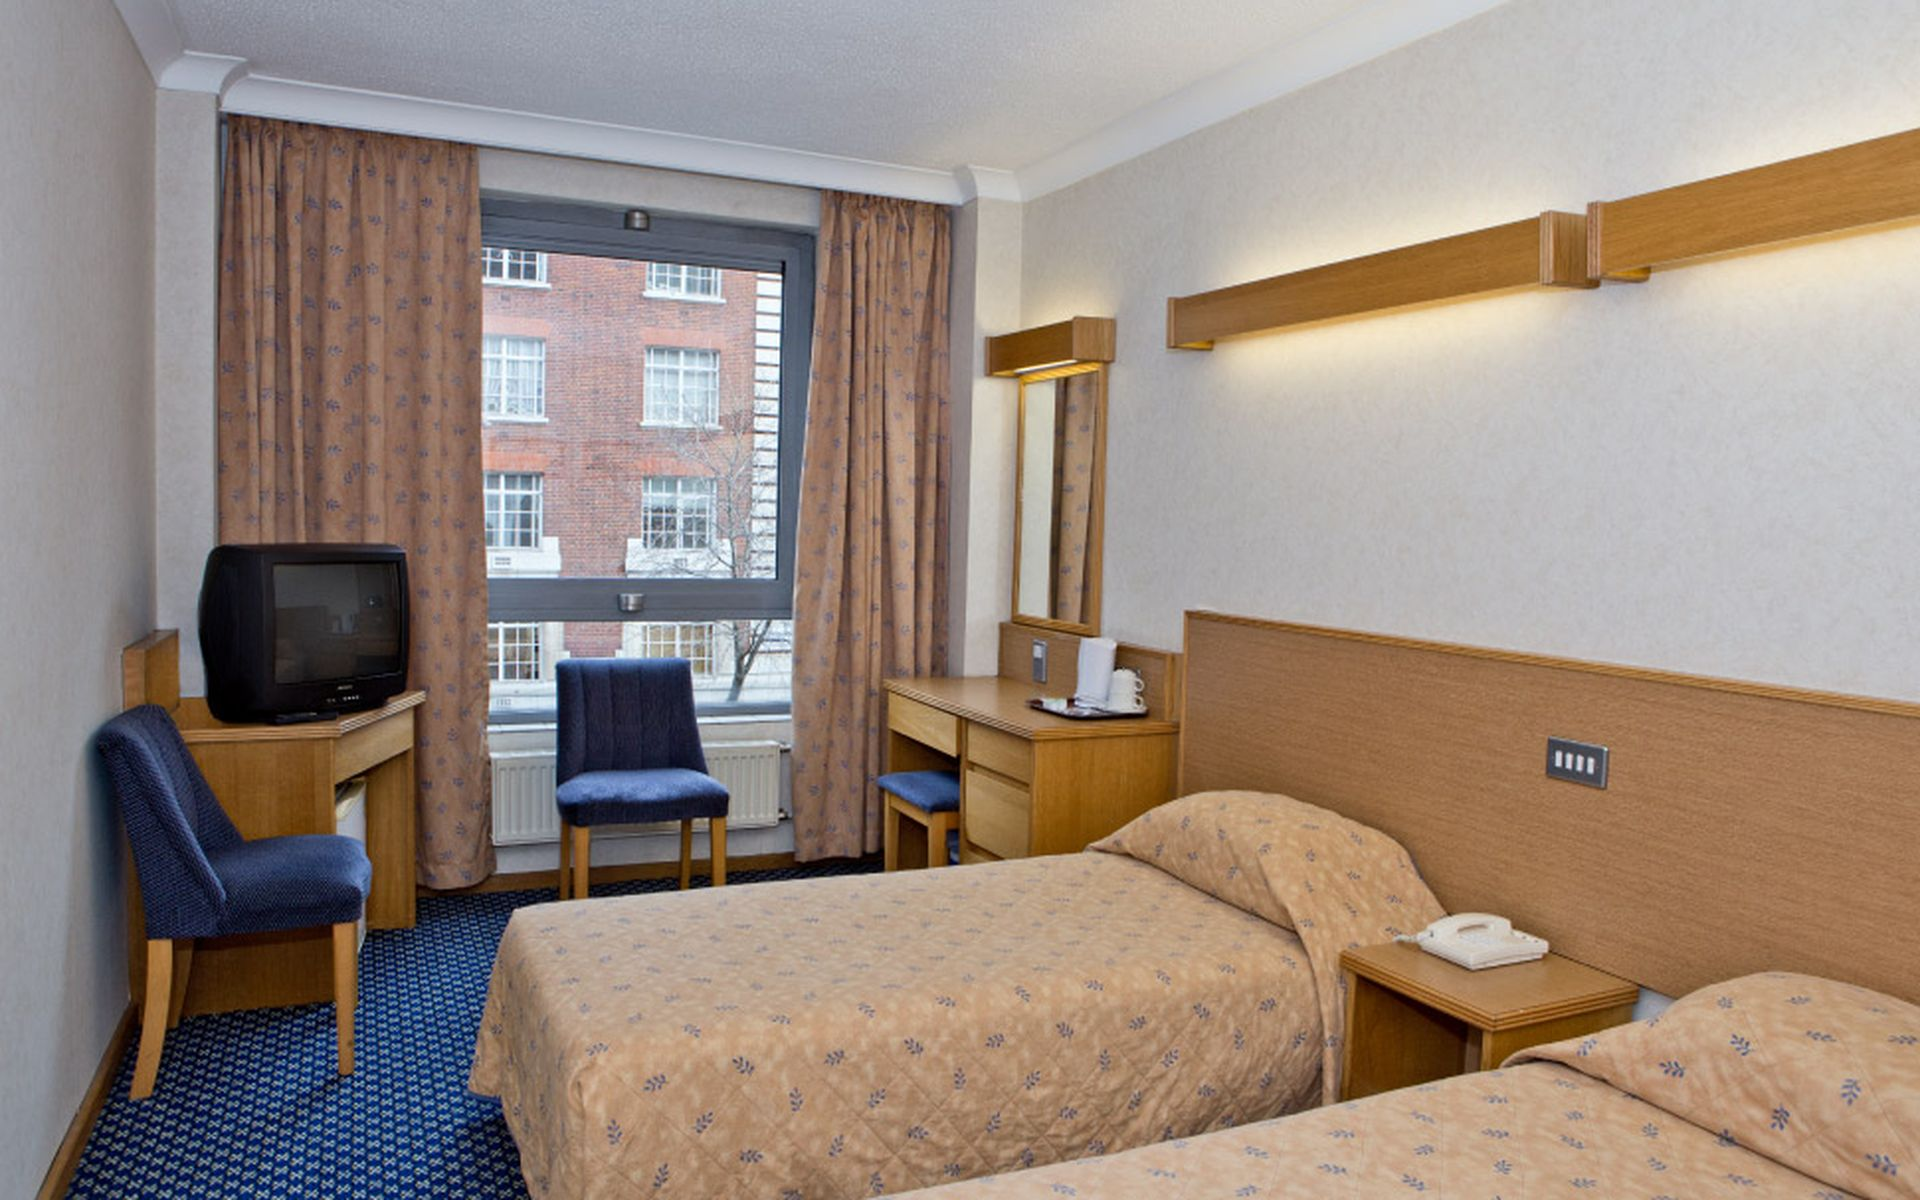 Hotel royal national london desde 59 logitravel for Hotel londres habitacion familiar